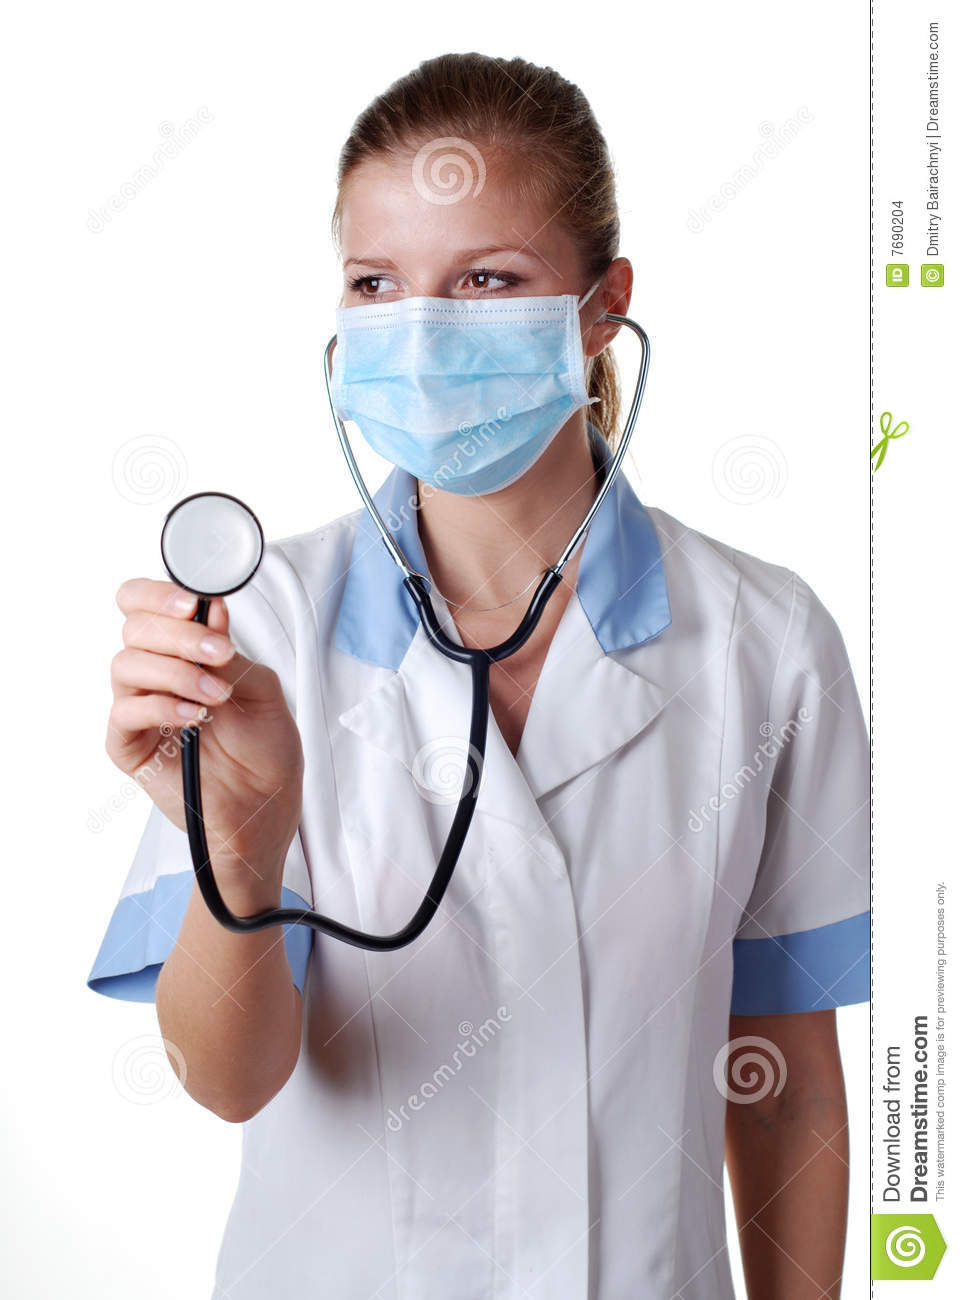 Nurse With Stethoscope And Mask Stock Images - Image: 7690204